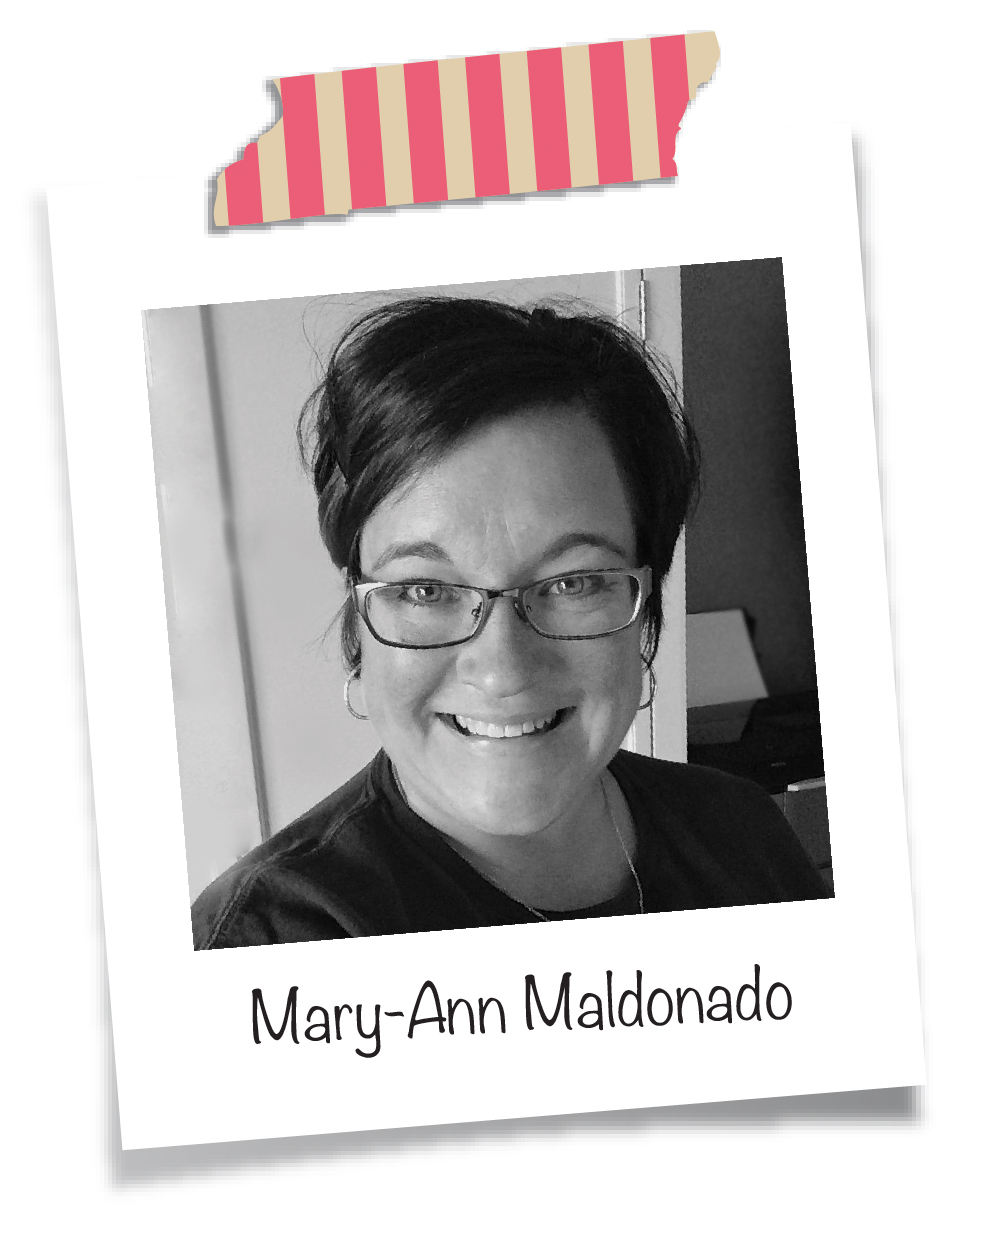 mambi Design Team member Mary-Ann Maldonado